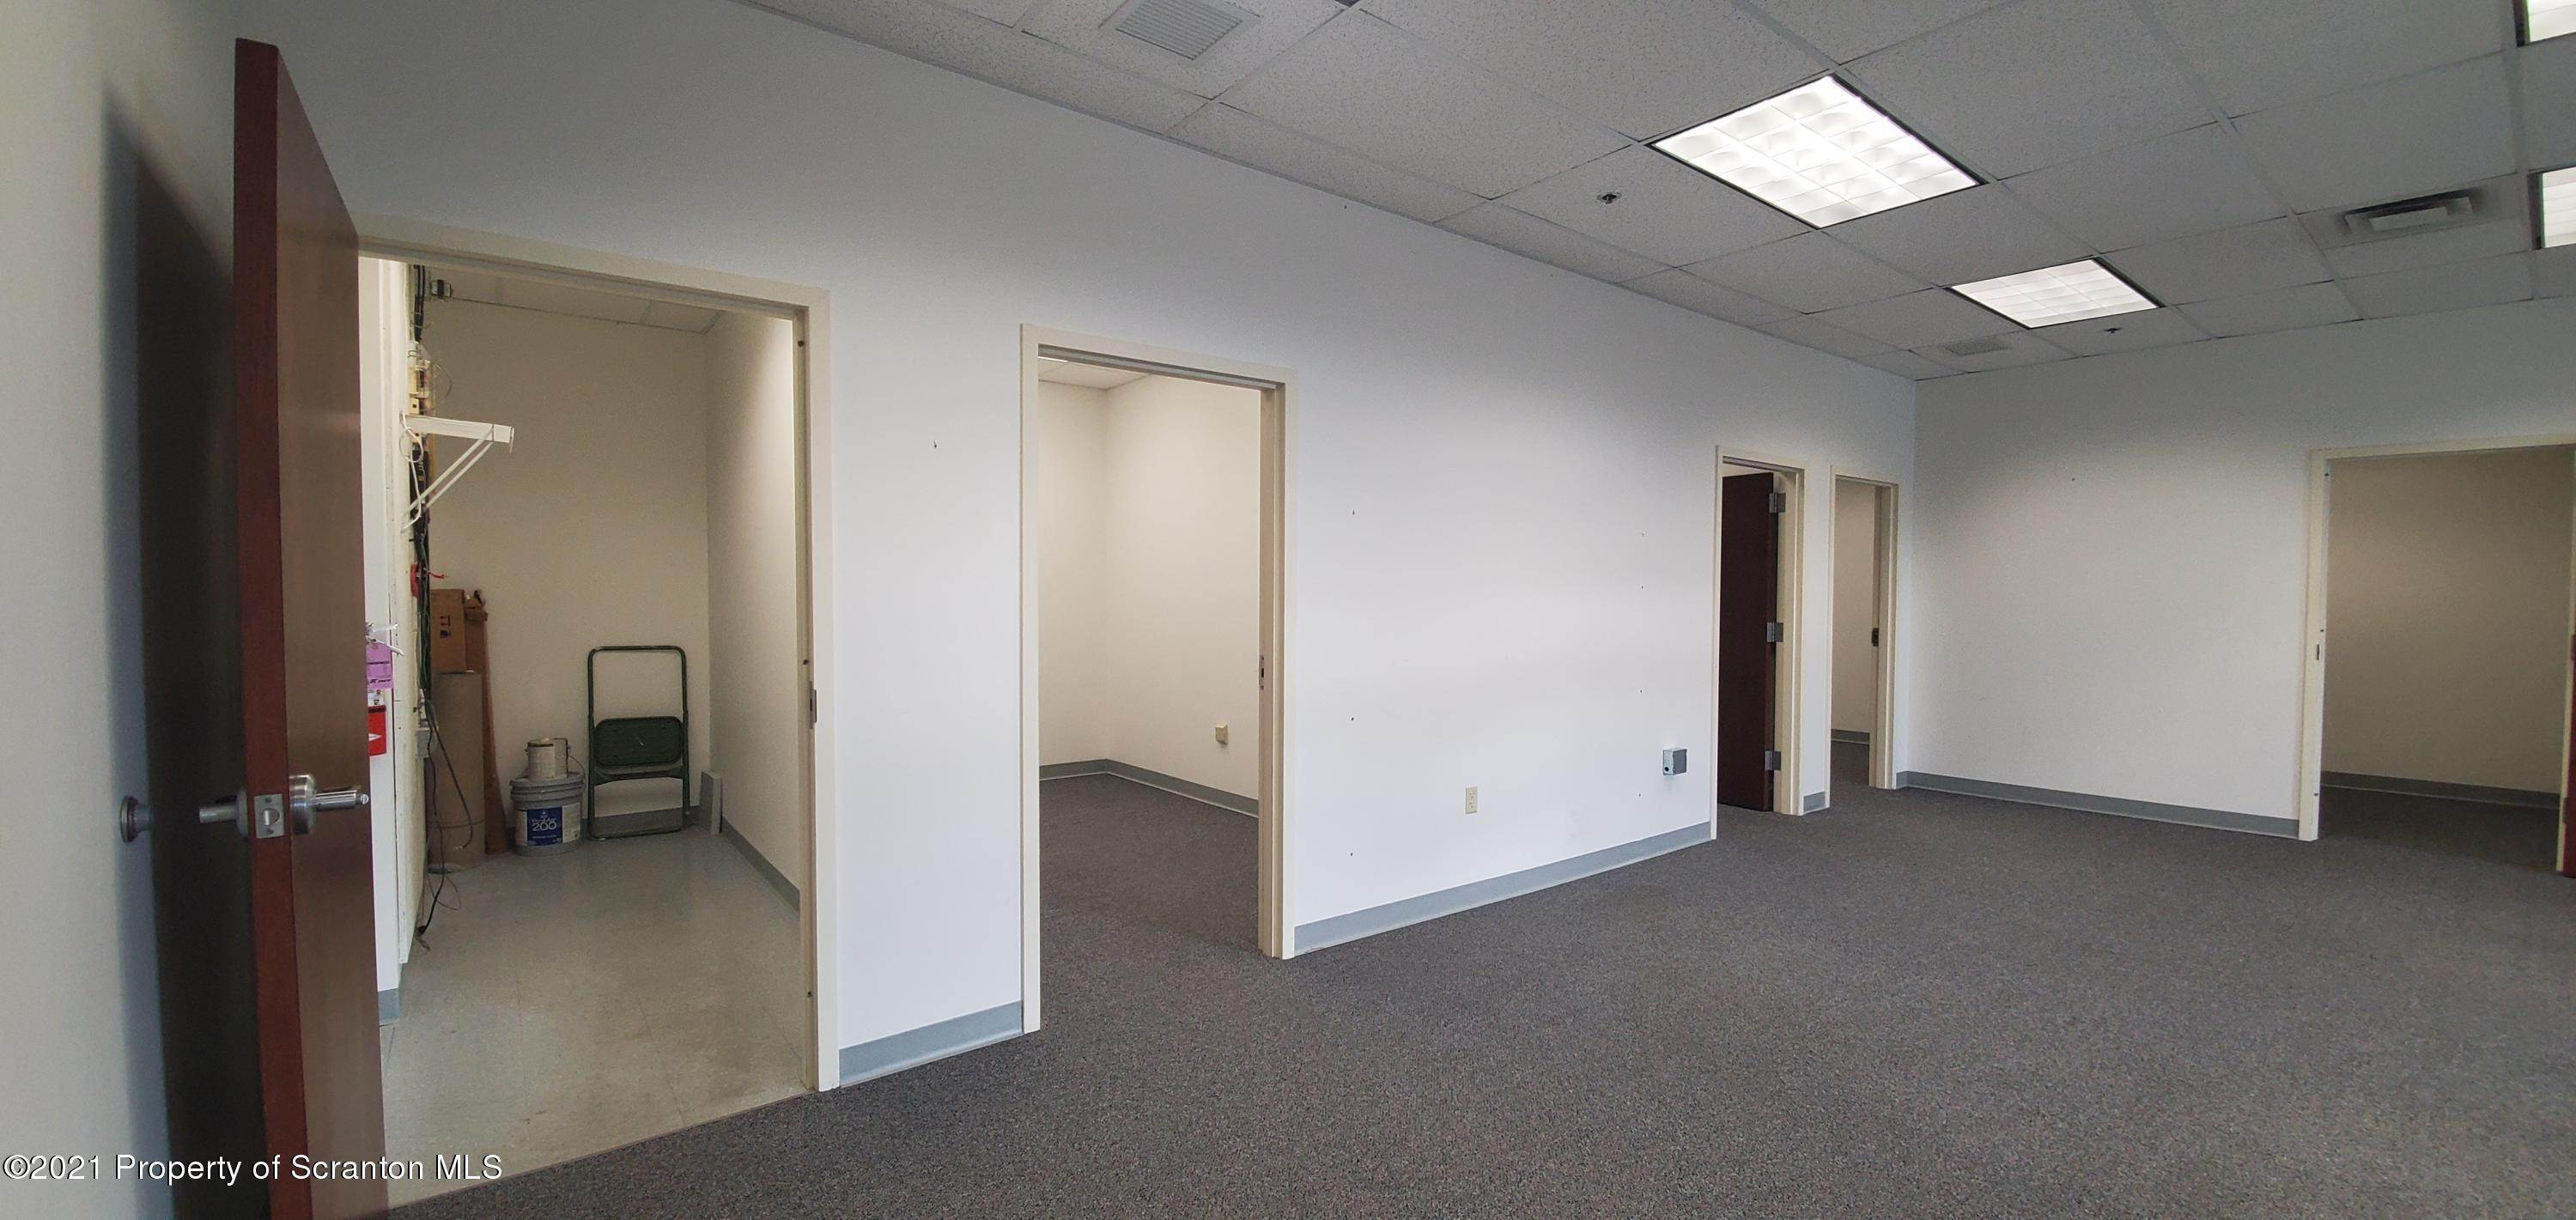 10. Commercial for Rent at 2200 Stafford Ave Scranton, Pennsylvania 18505 United States